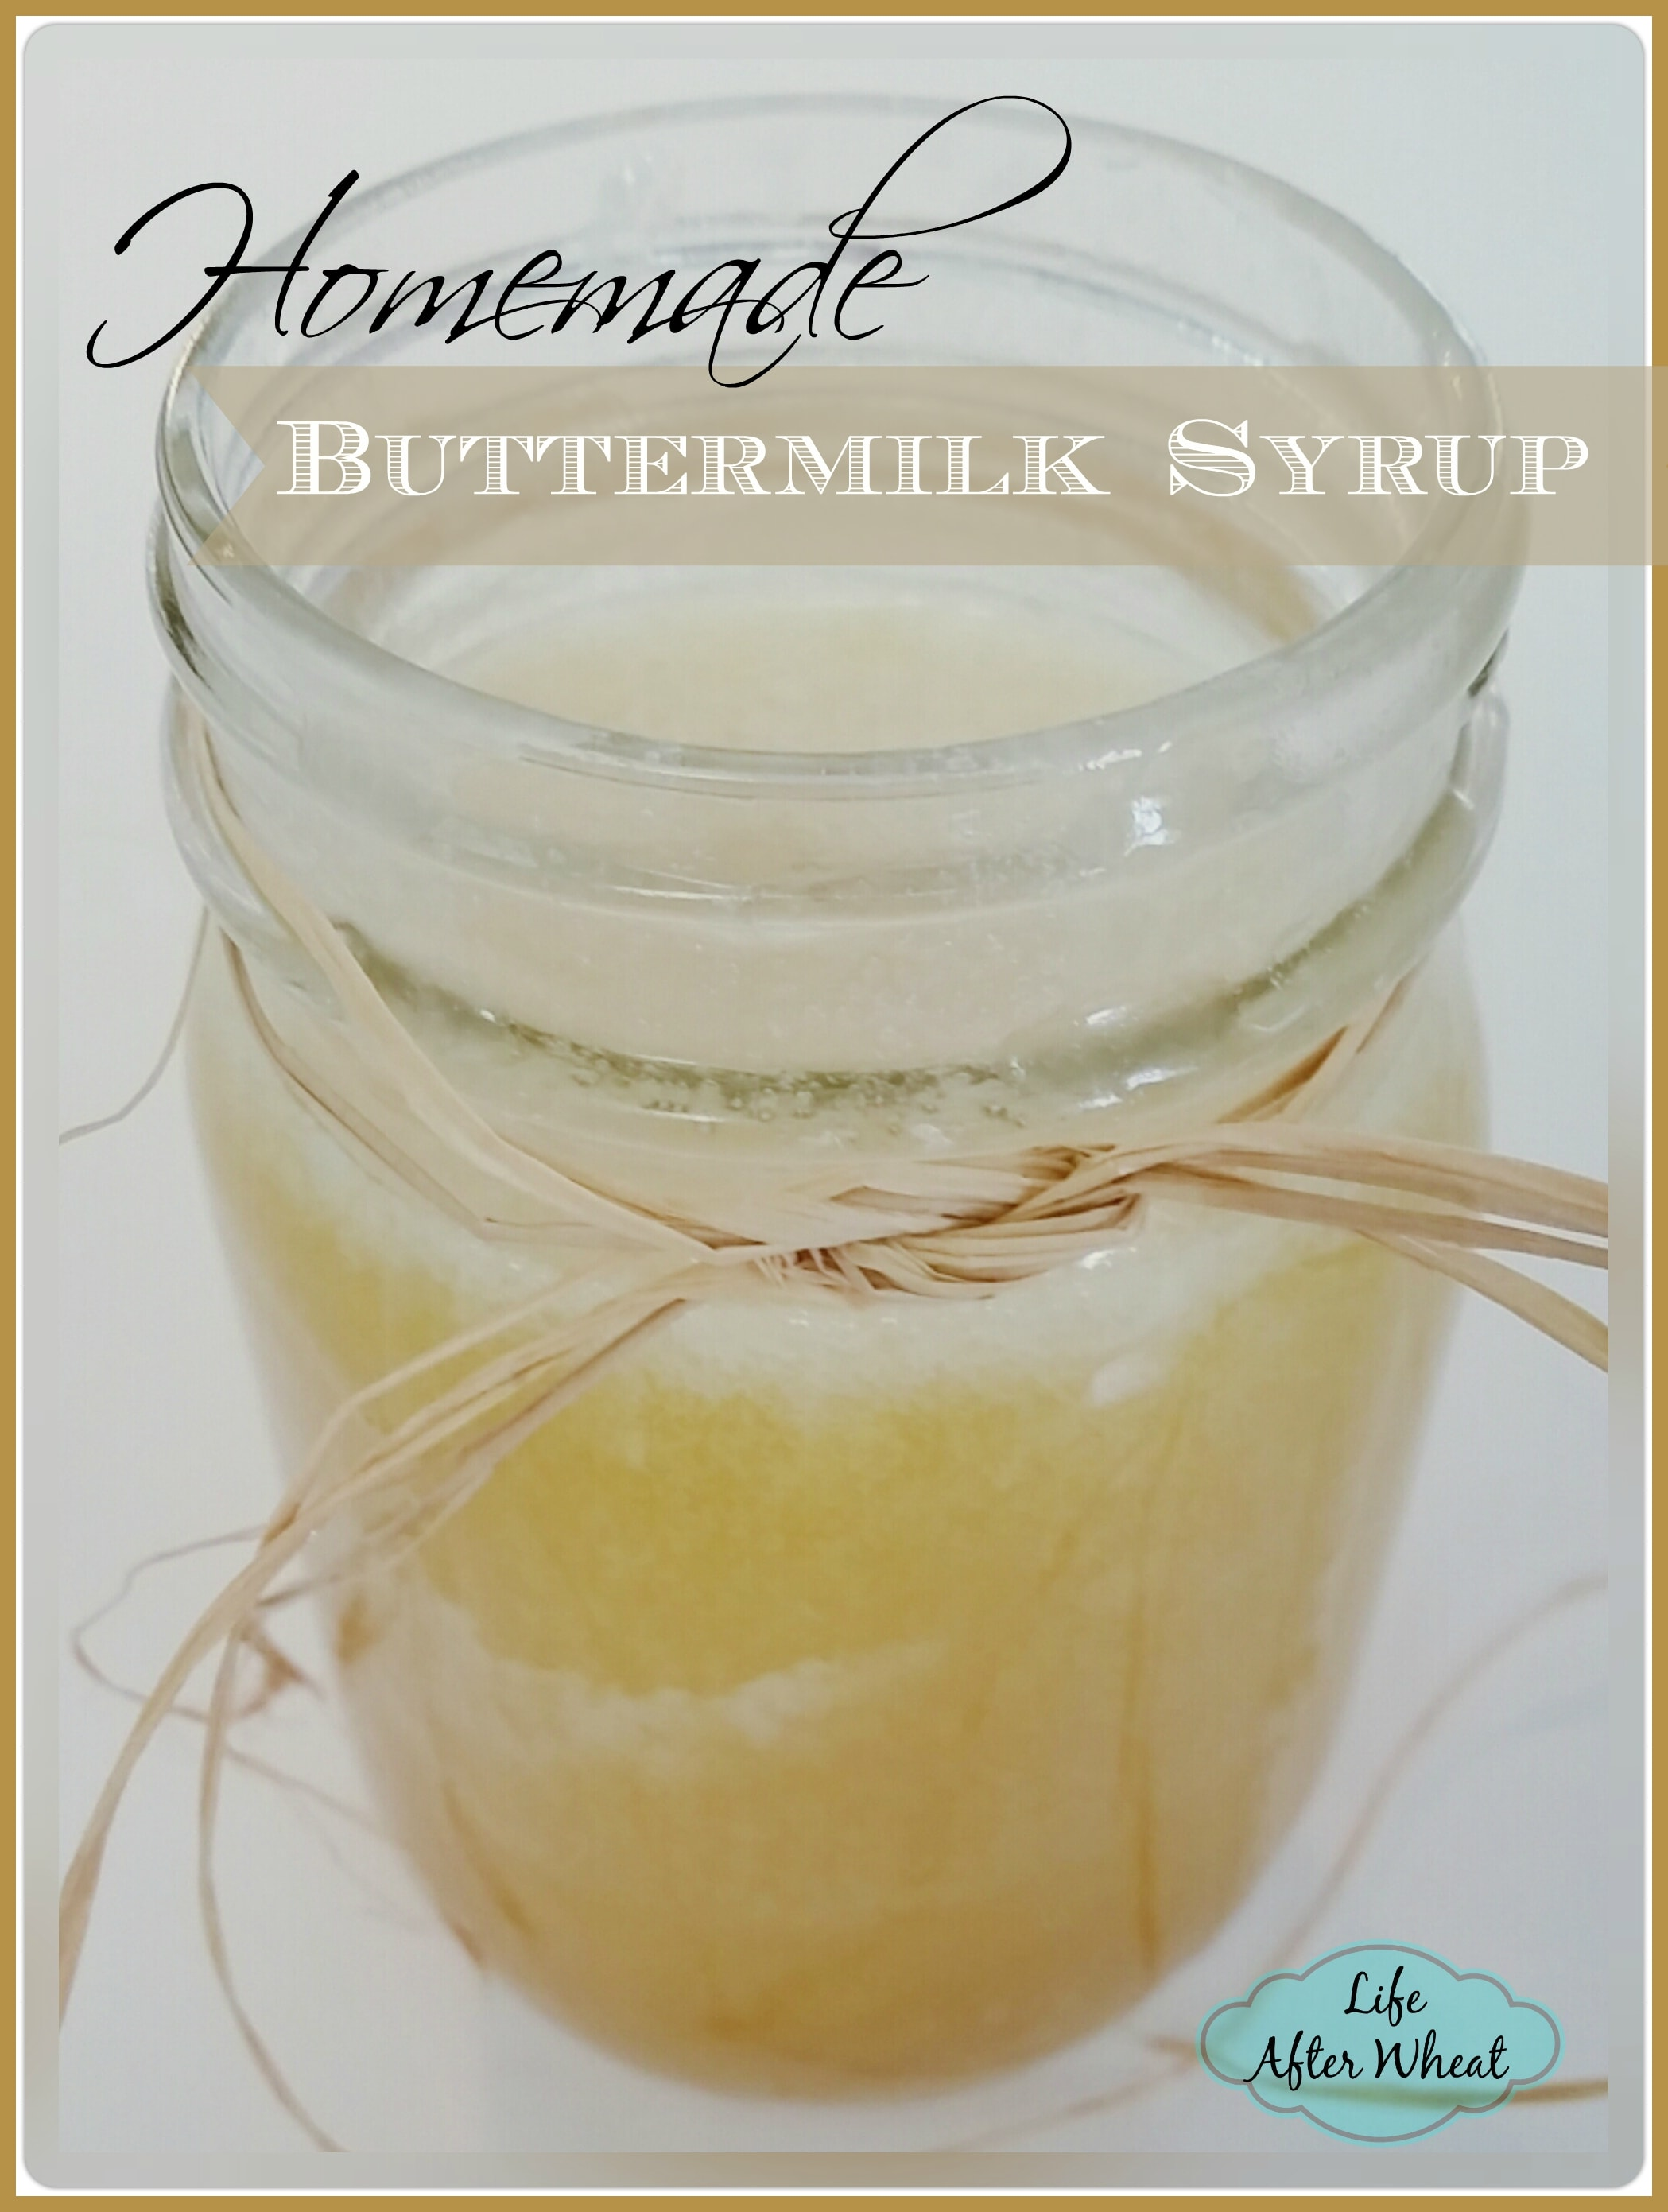 Buttermilk Syrup is perfect served with French toast, pancakes, waffles, or anything else you can drench in syrup. Once you try it, you'll never go back to regular maple syrup!